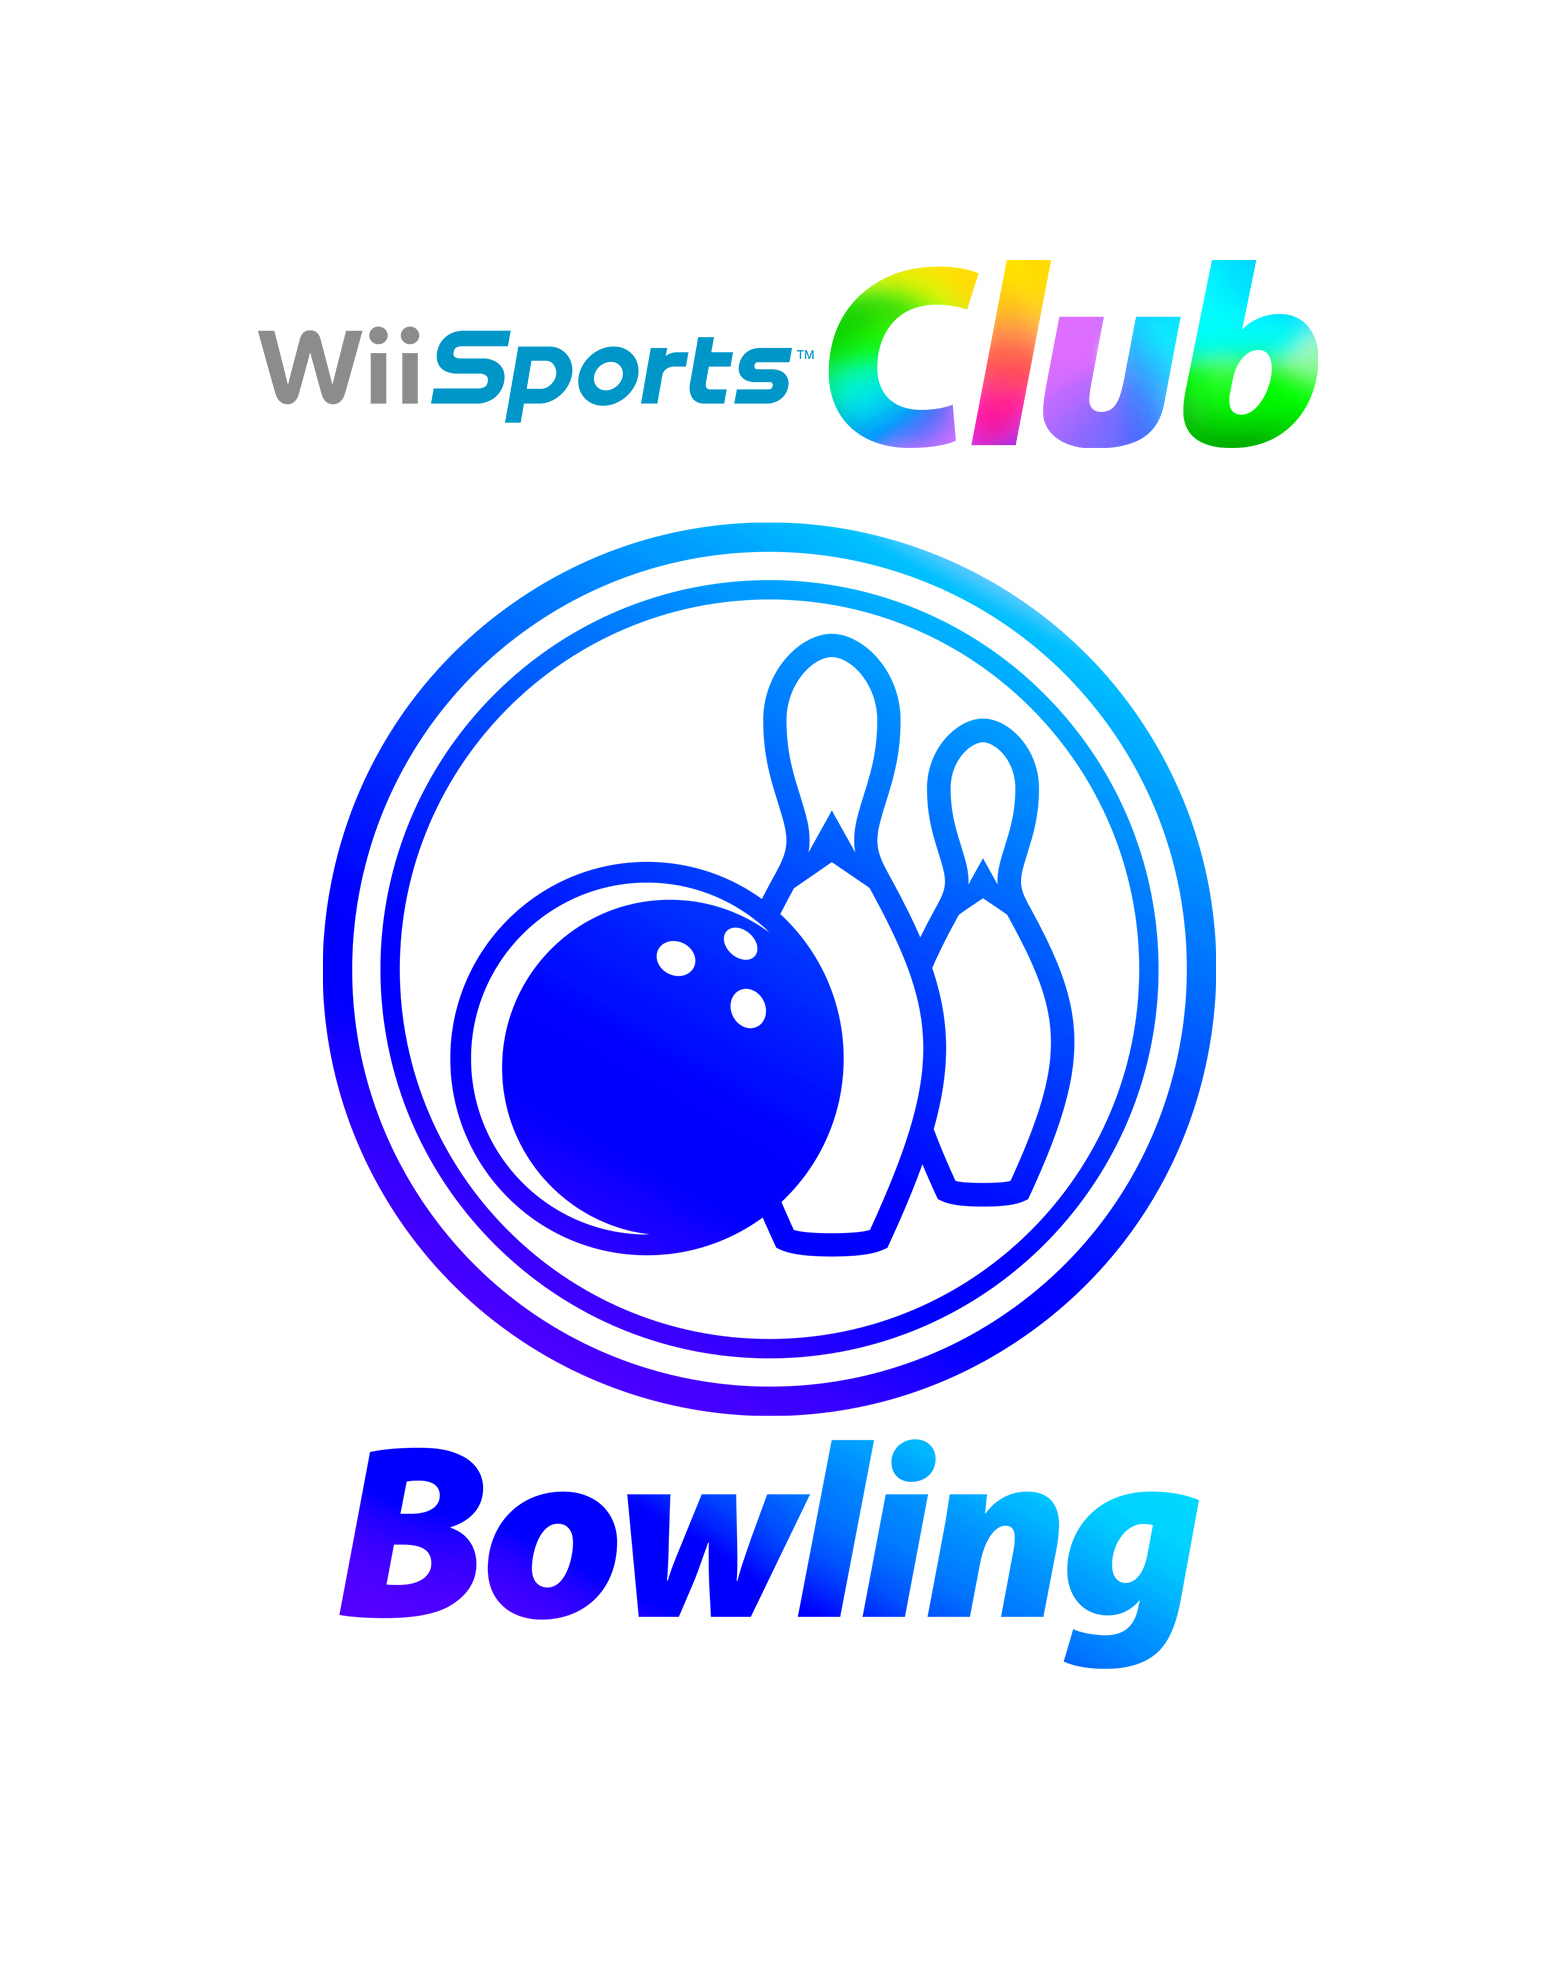 Wii Bowling Clipart UZyued Clipart besides Birthday Wishes For Your Daughter further 5 moreover Avril Lavigne Fala Sobre O Novo Disco E Promete O Lancamento Para Este Ano as well Watch. on halloween nose